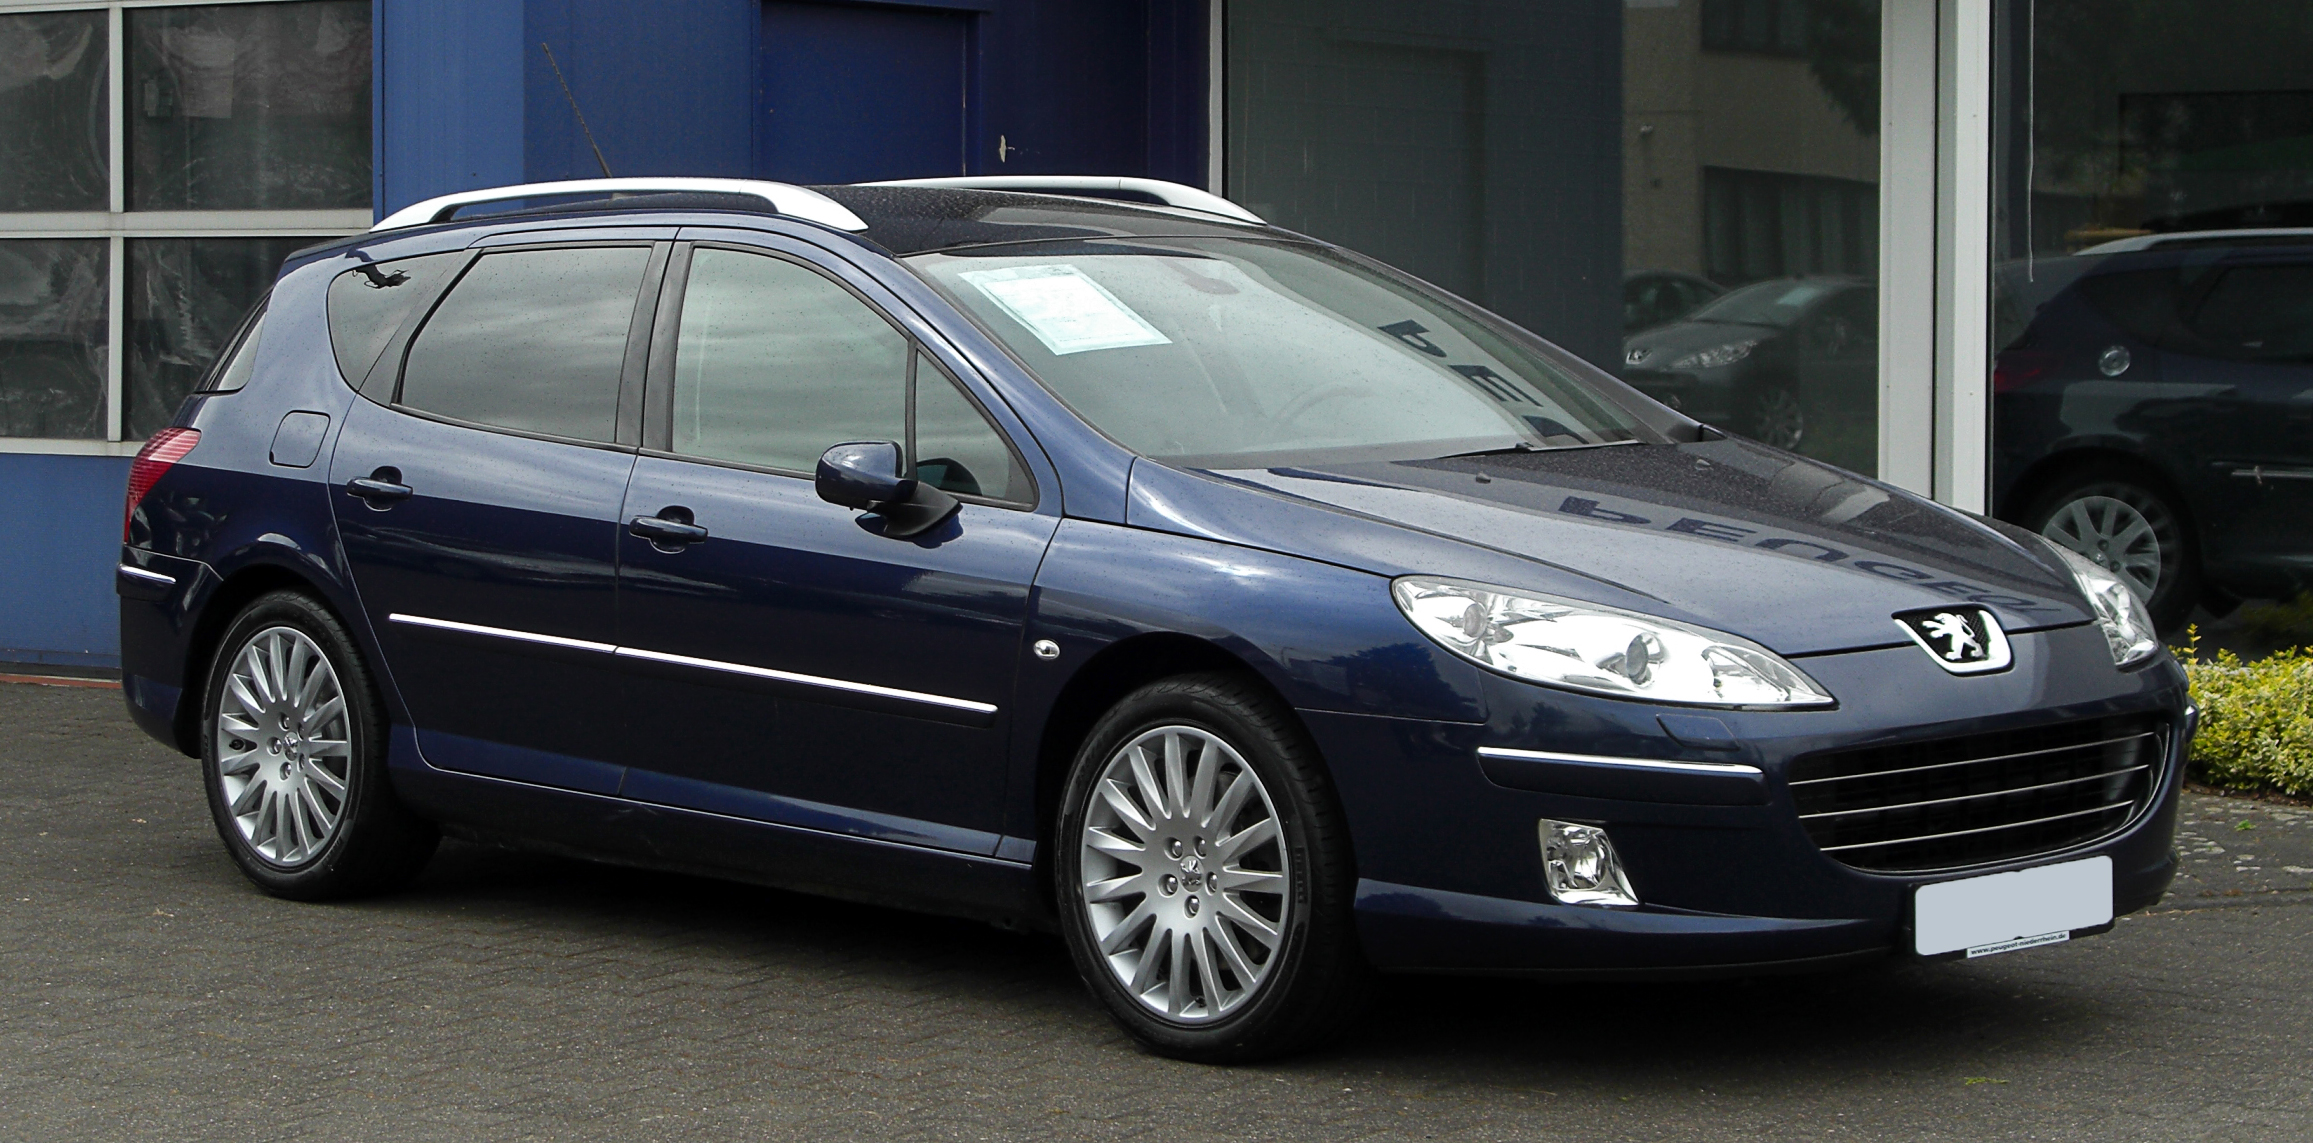 2011 peugeot 407 sw pictures information and specs auto. Black Bedroom Furniture Sets. Home Design Ideas